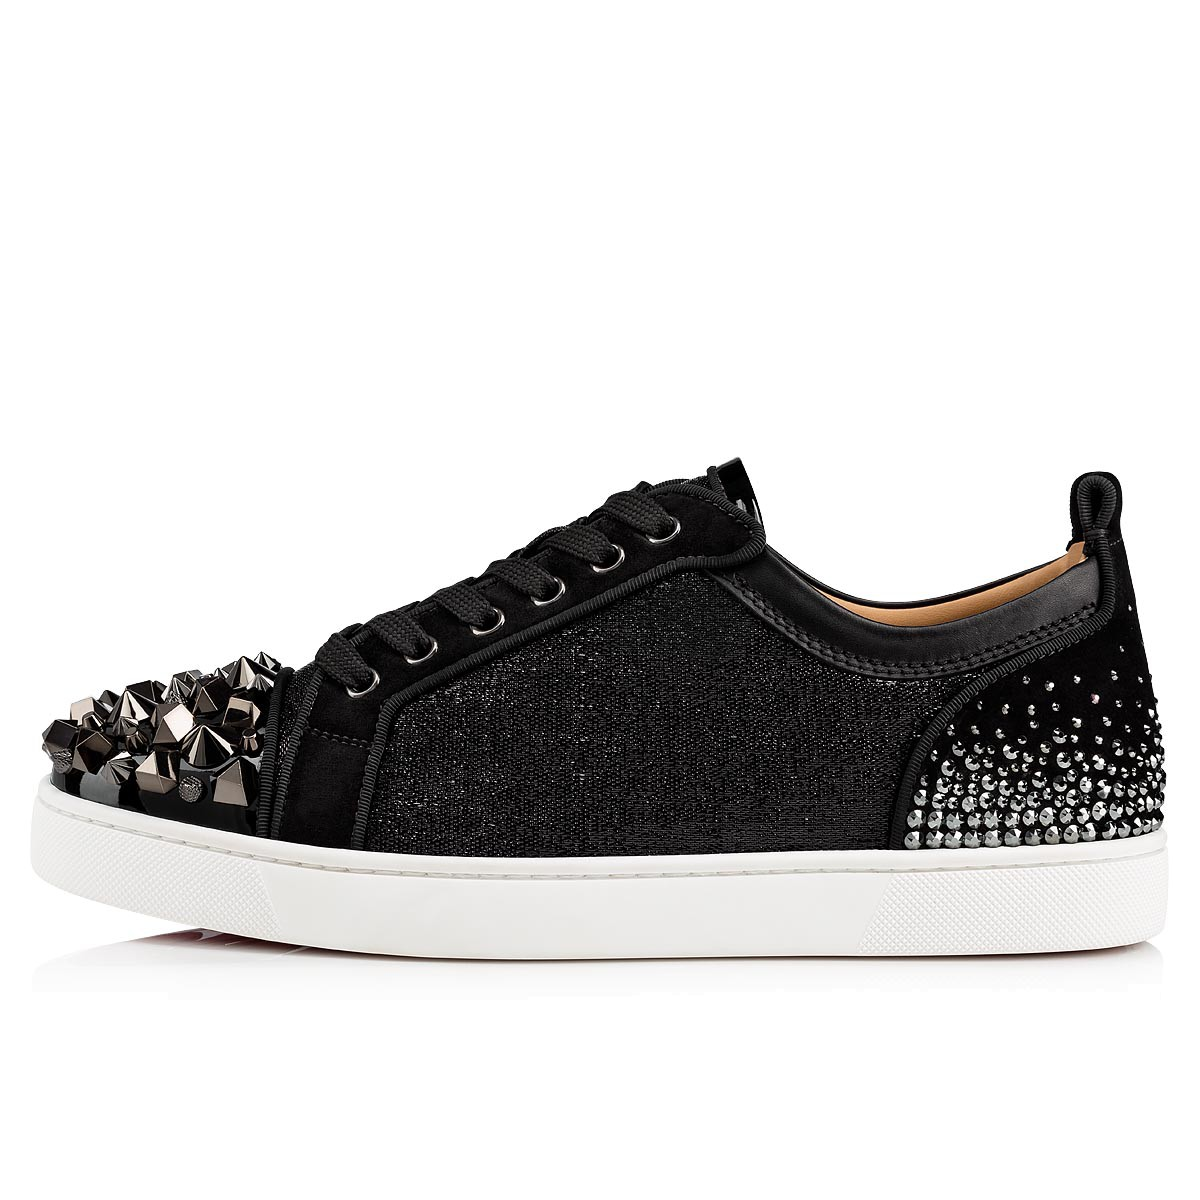 メンズシューズ - Louis Junior Mix Degra Men's Flat - Christian Louboutin